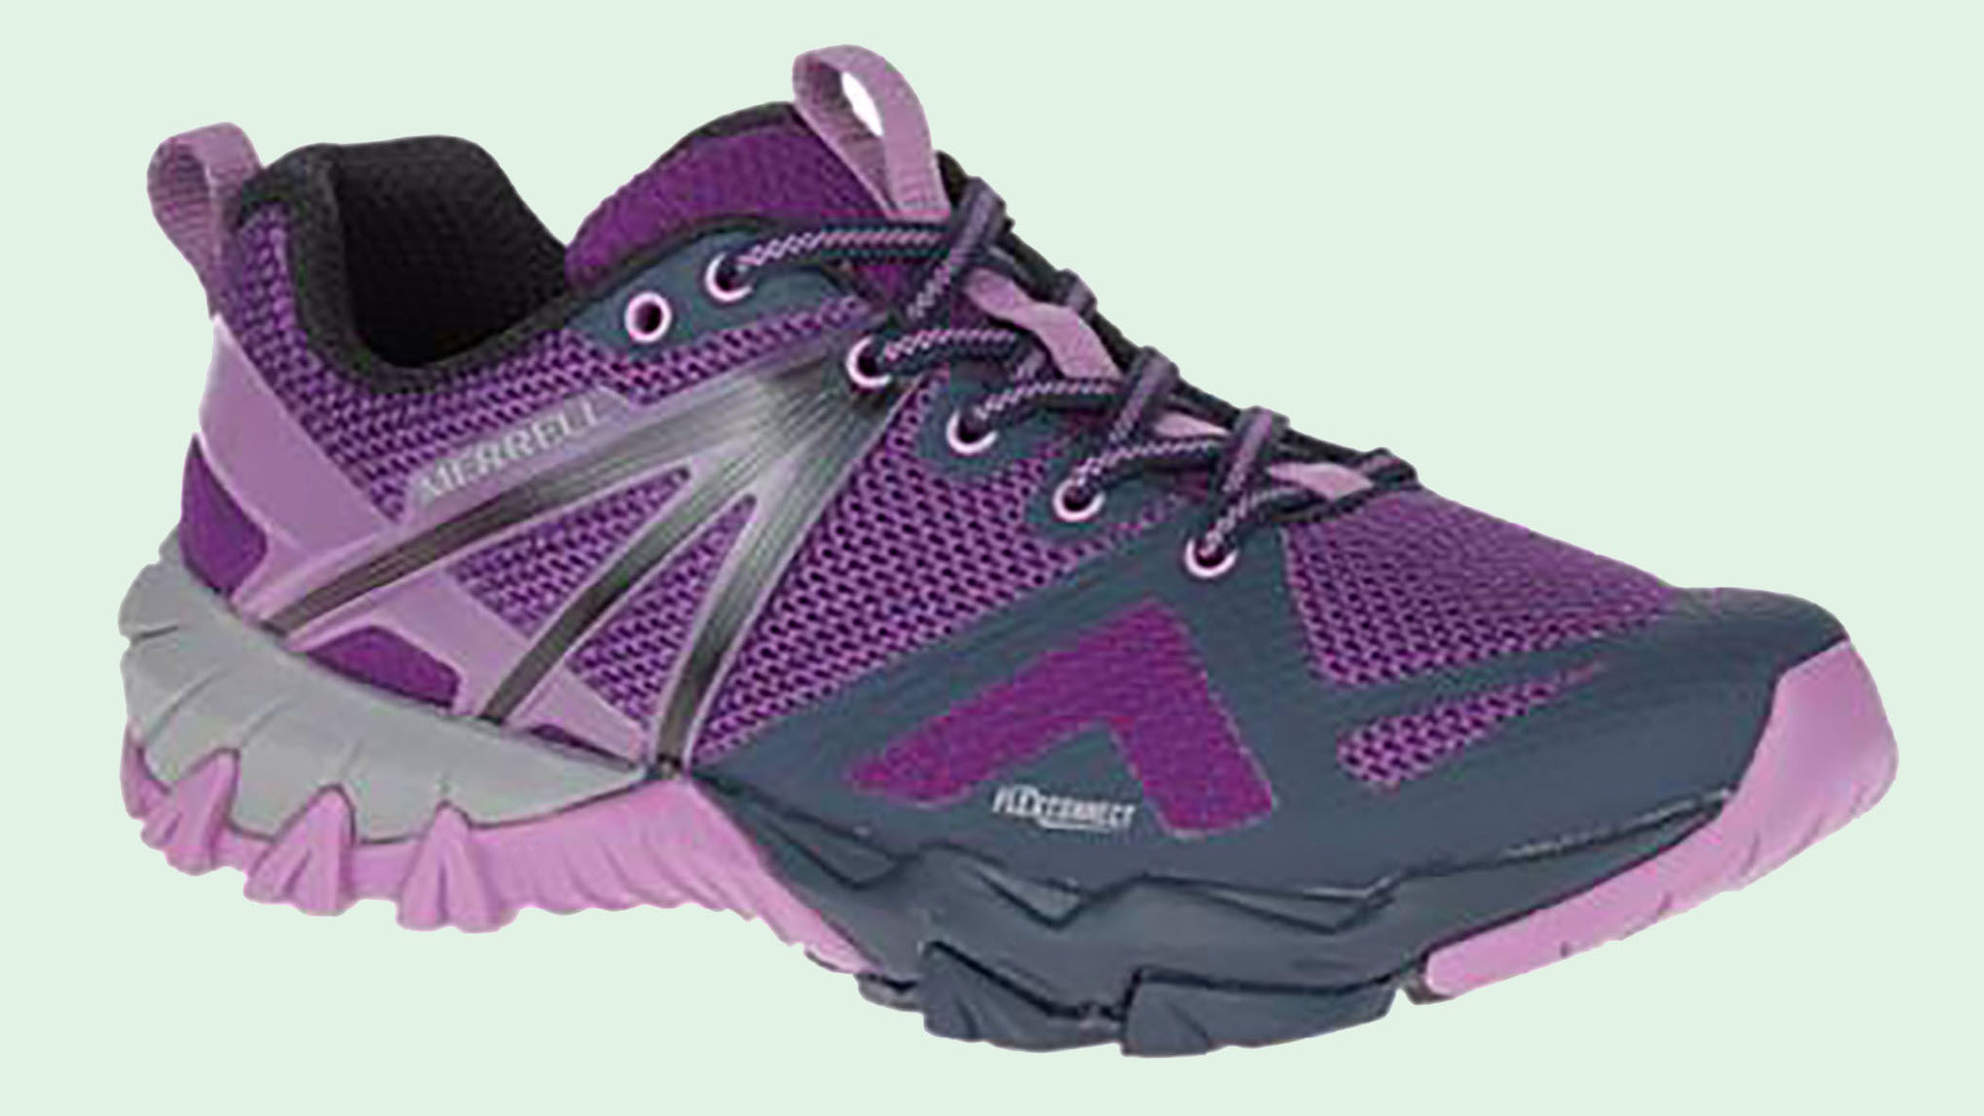 merrell-hiking-shoes-labor-day-sale